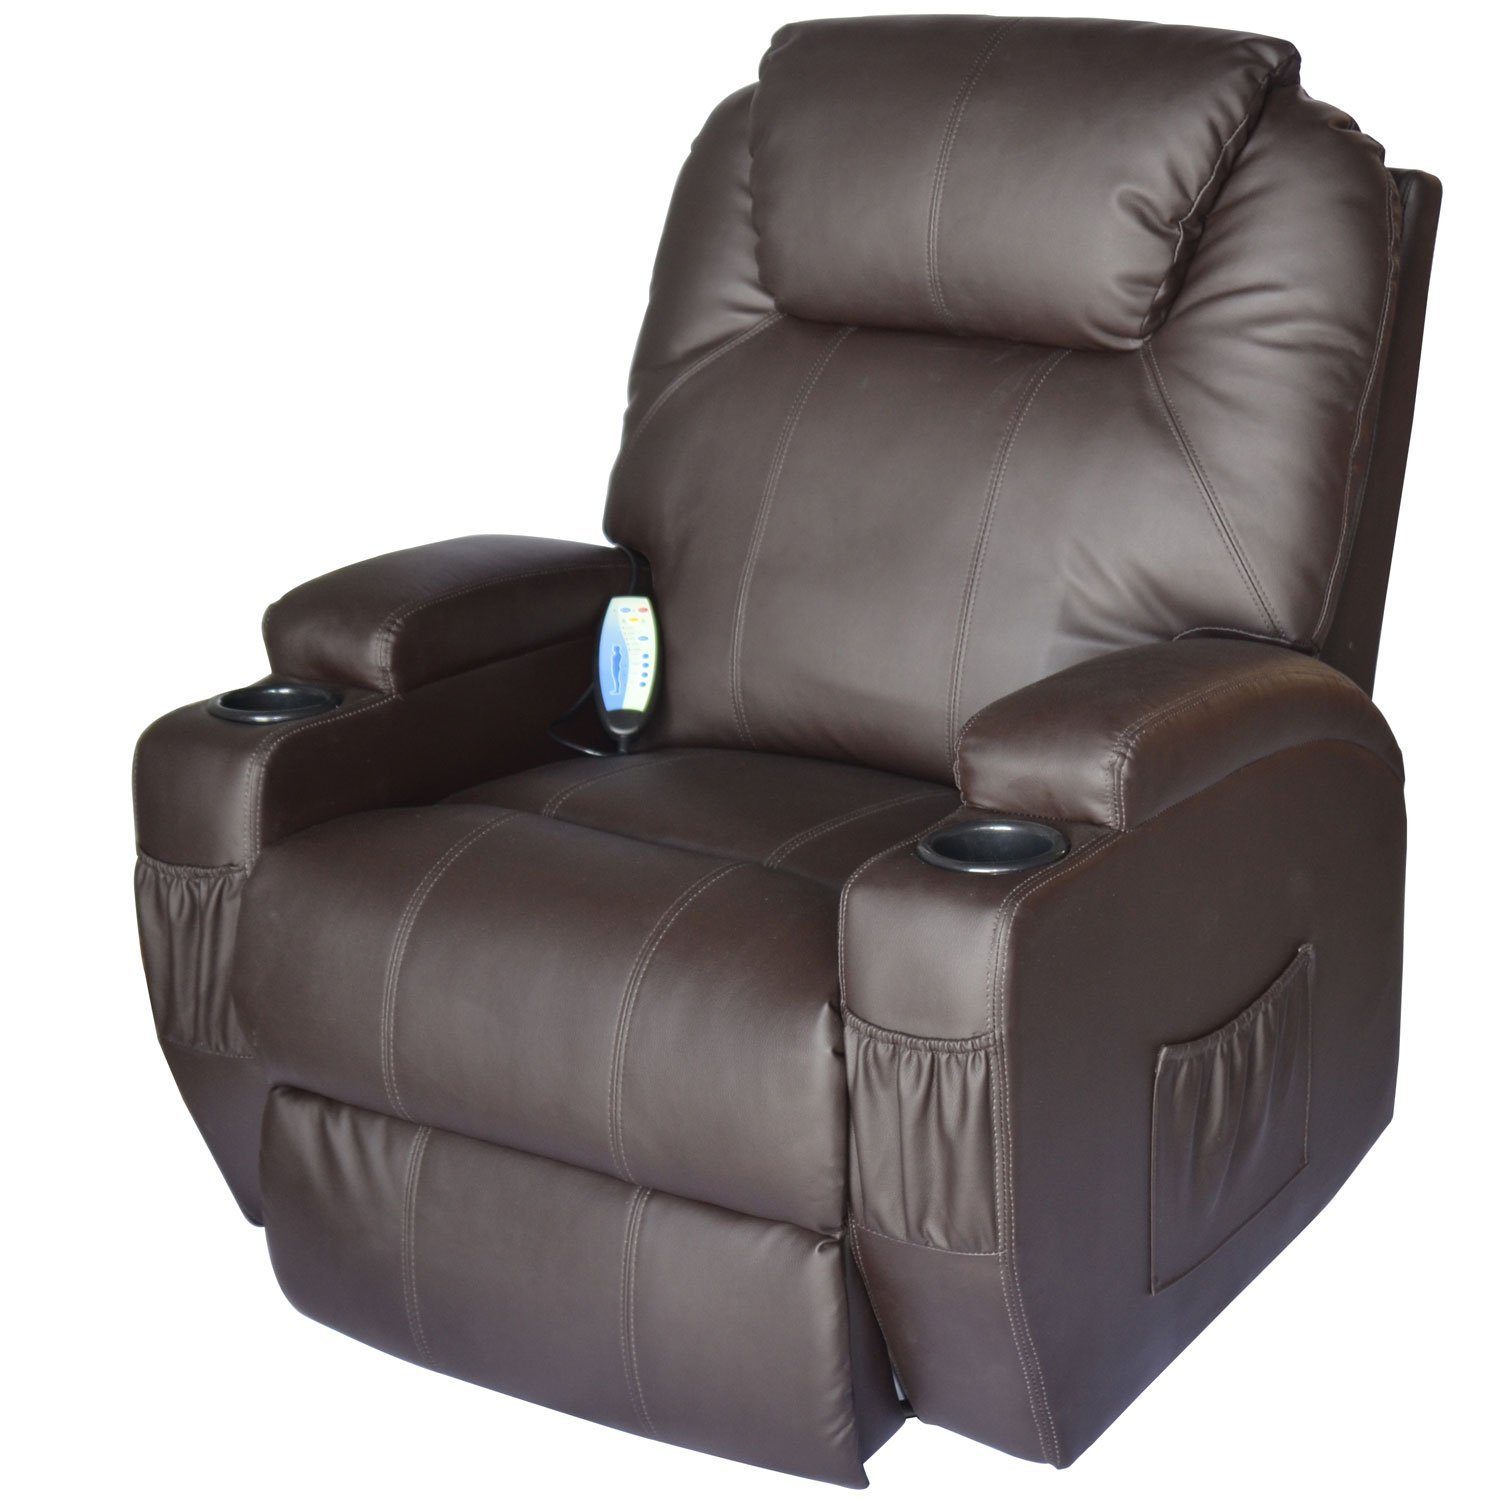 compelling size ah ater gt comfort of learrecliners by man lear large chair collins room fabulous american big recliners made furniture recliner design review heavy living duty cl chairs home